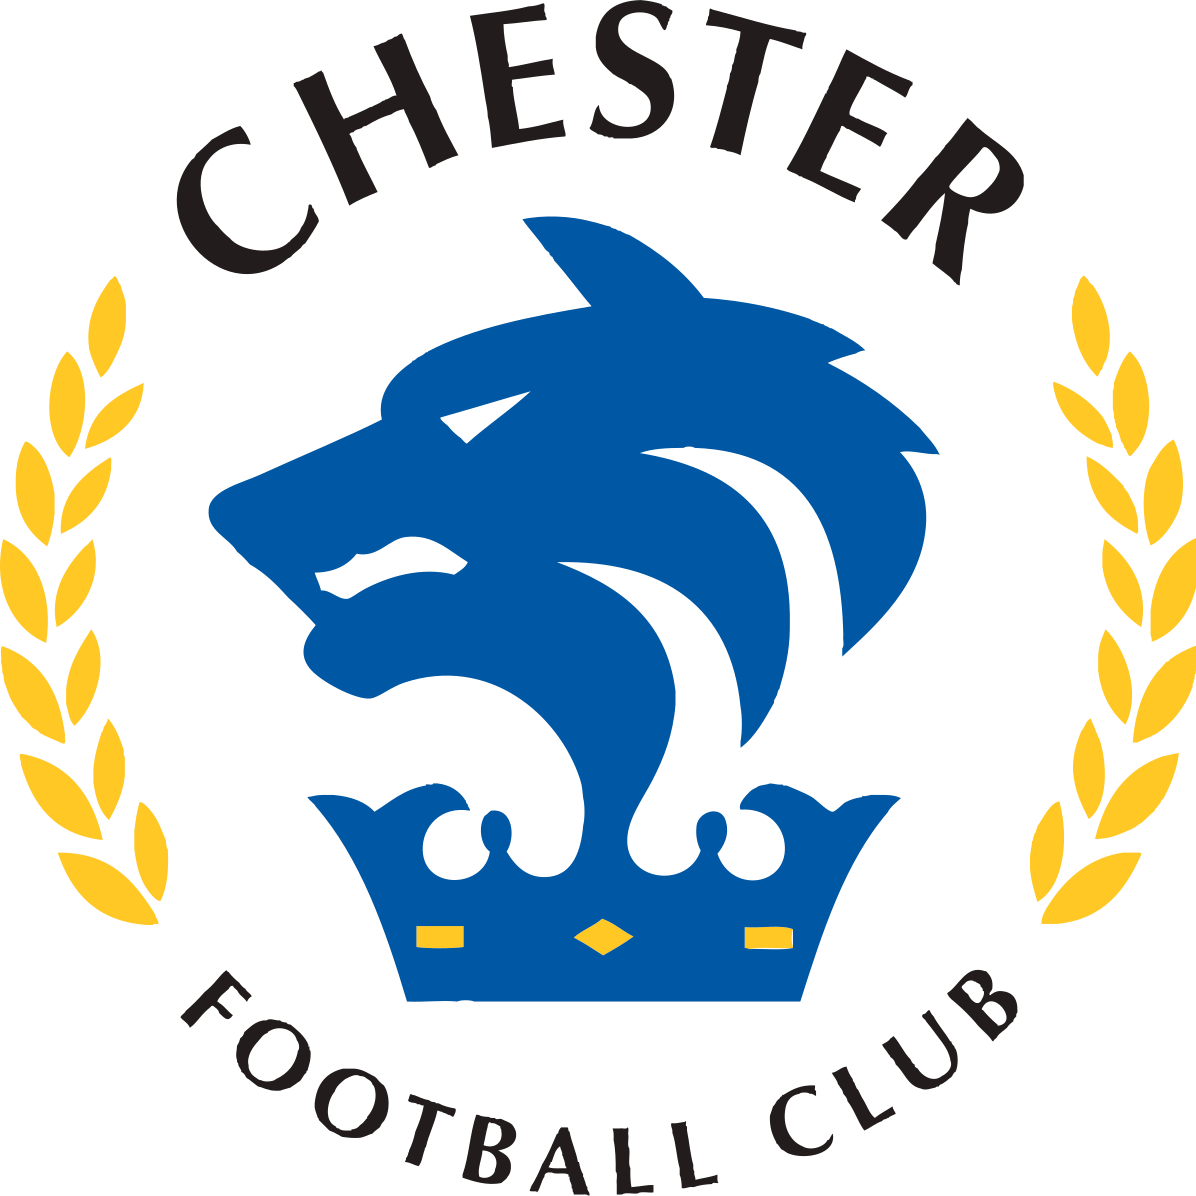 Hosted By Chester Football Club